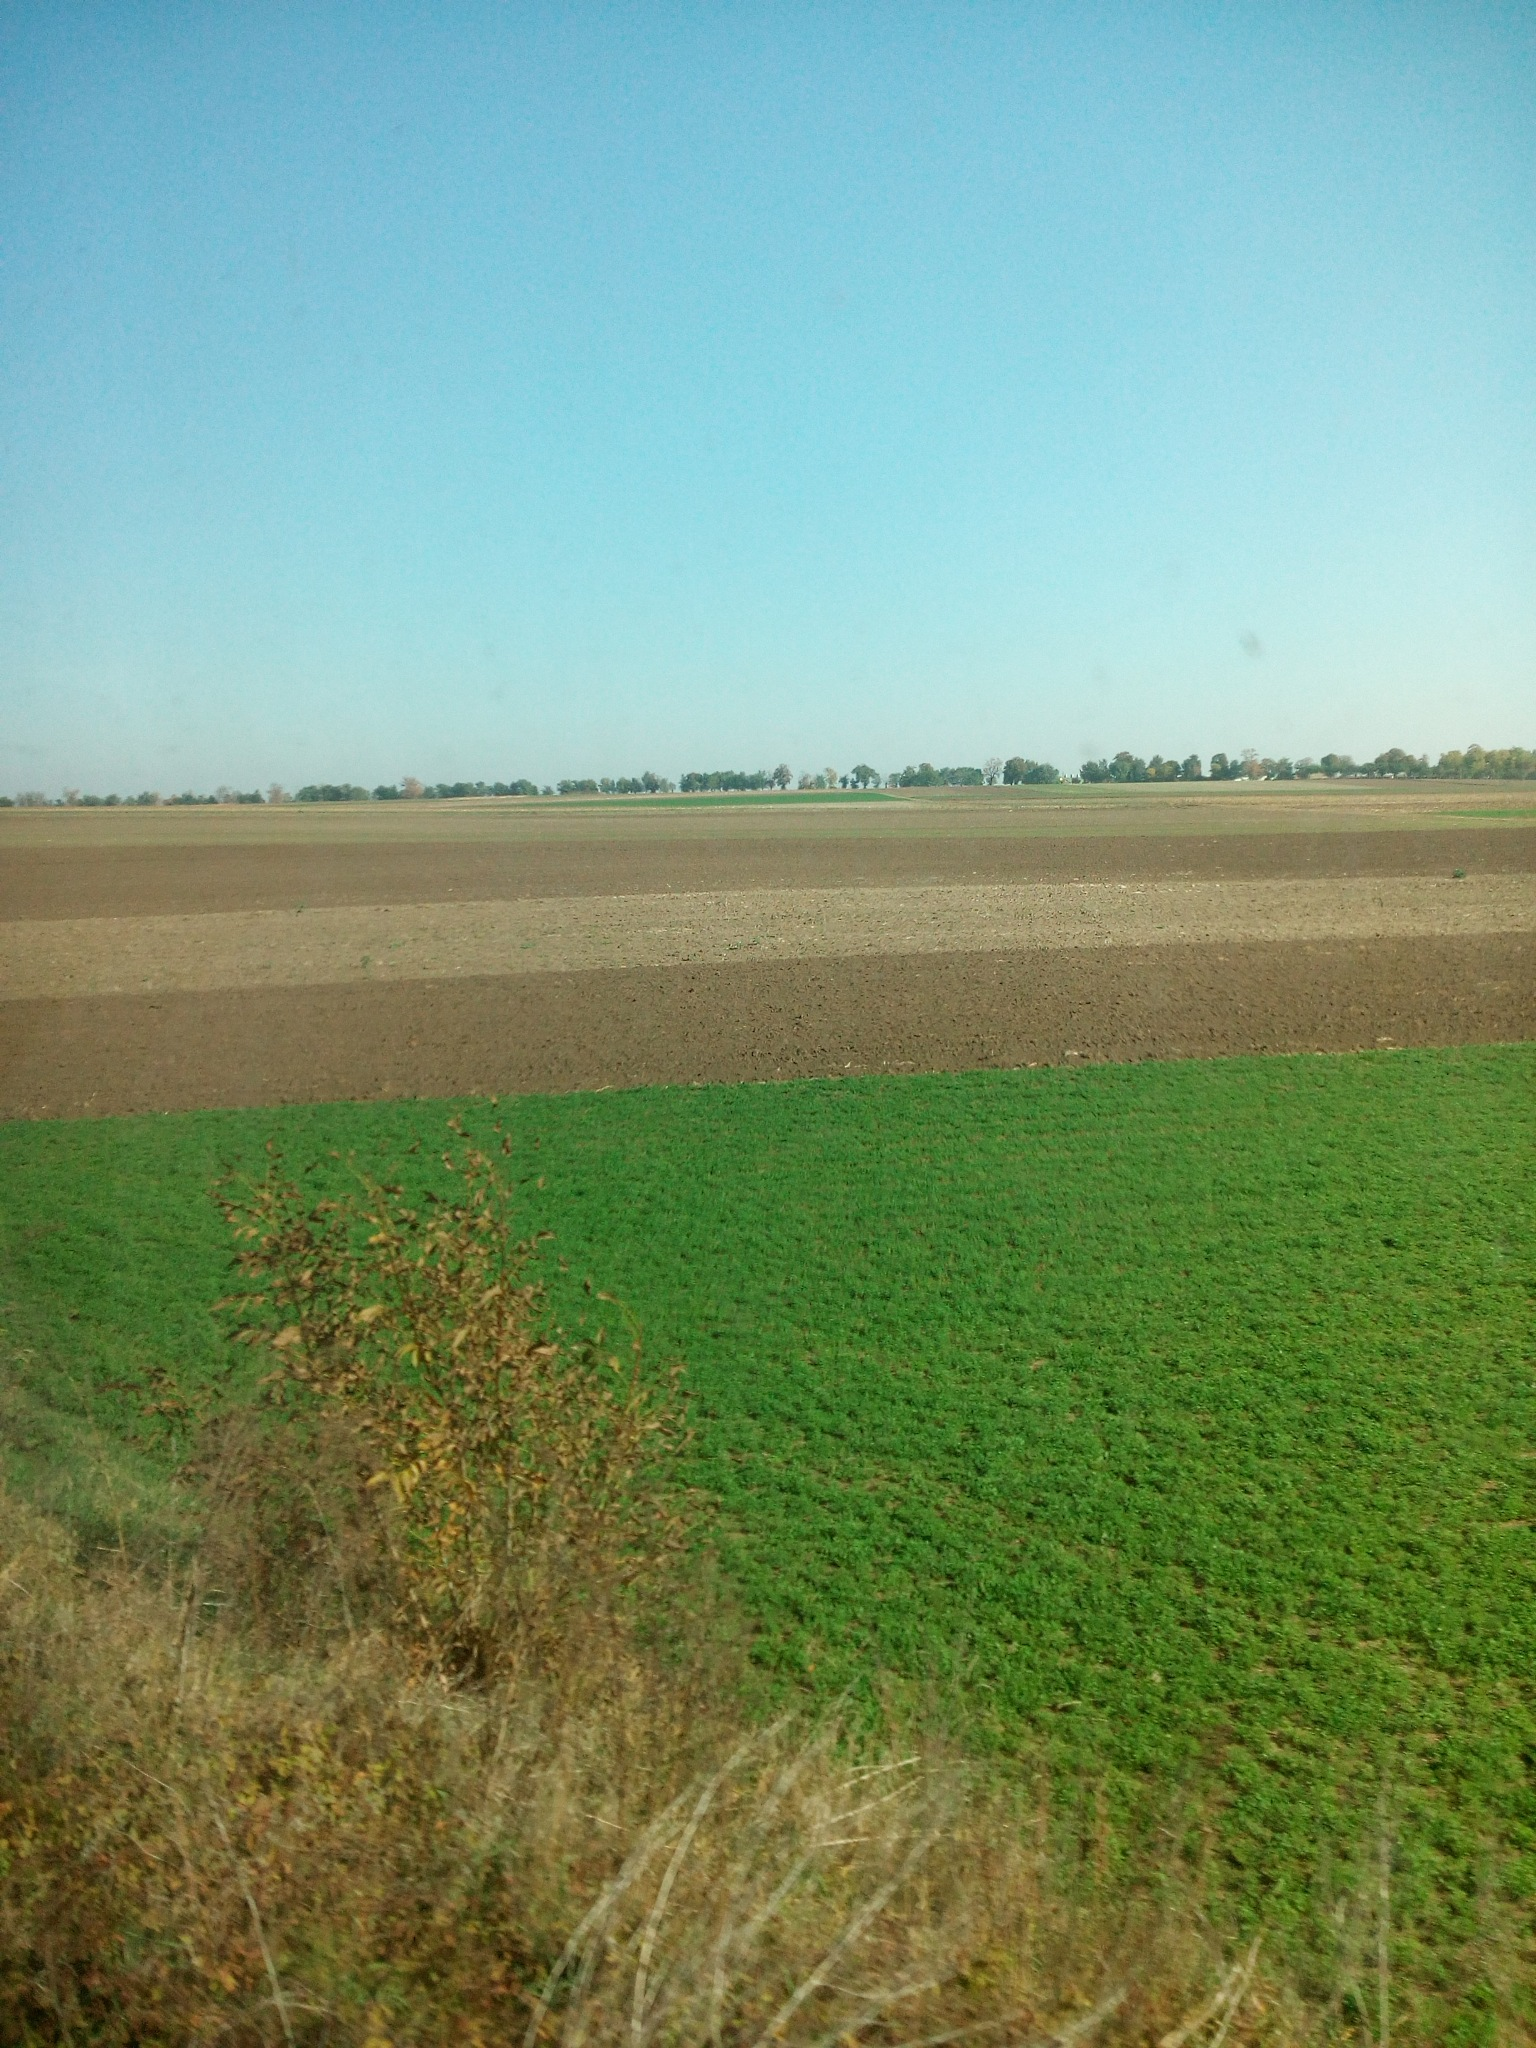 View from the train by Minja